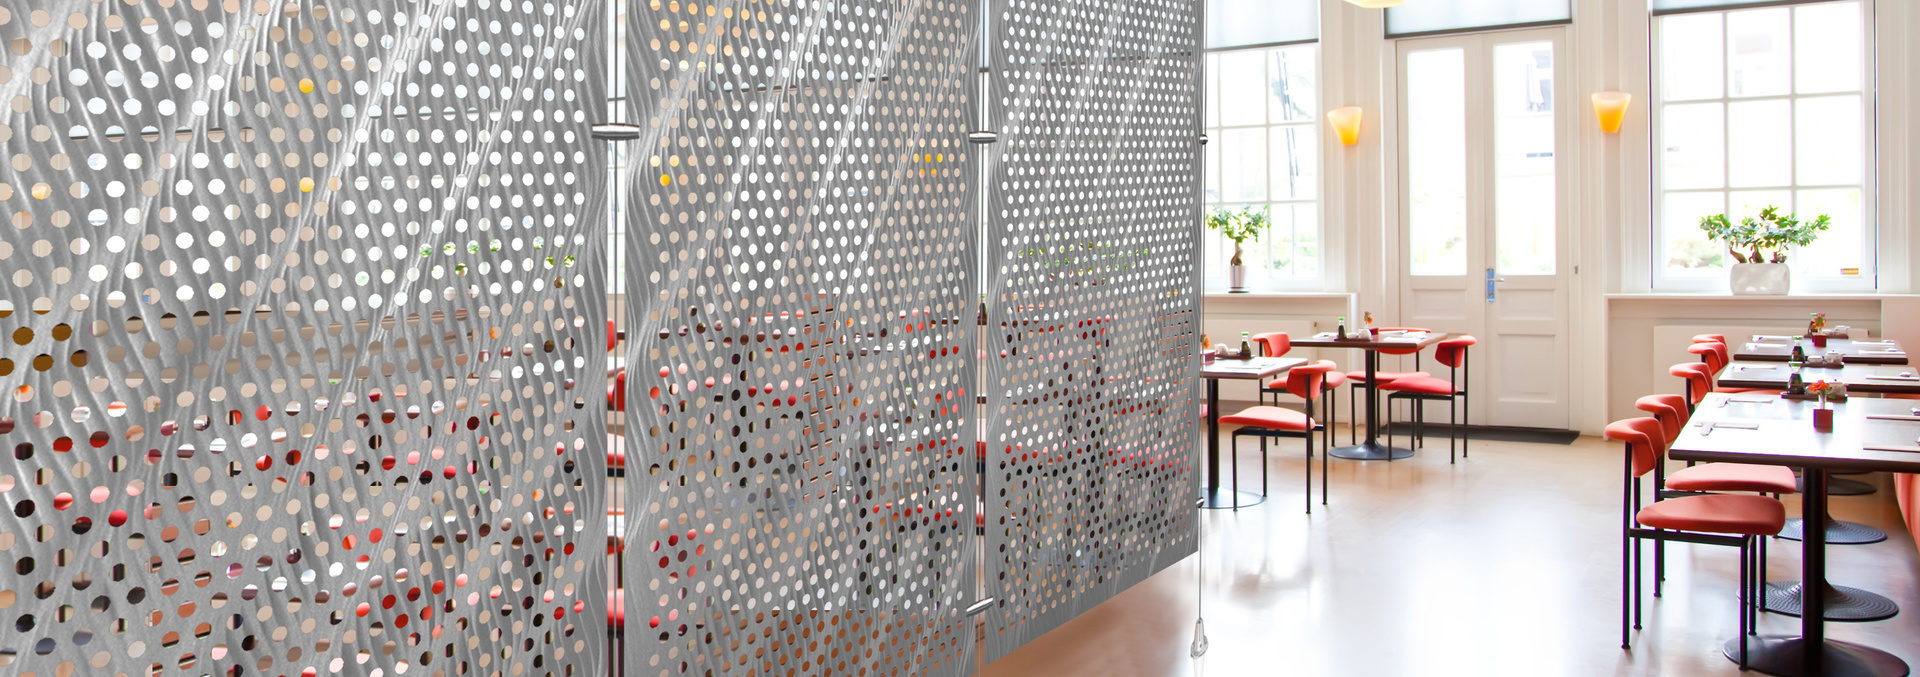 modern stylish wall in restaurant interior